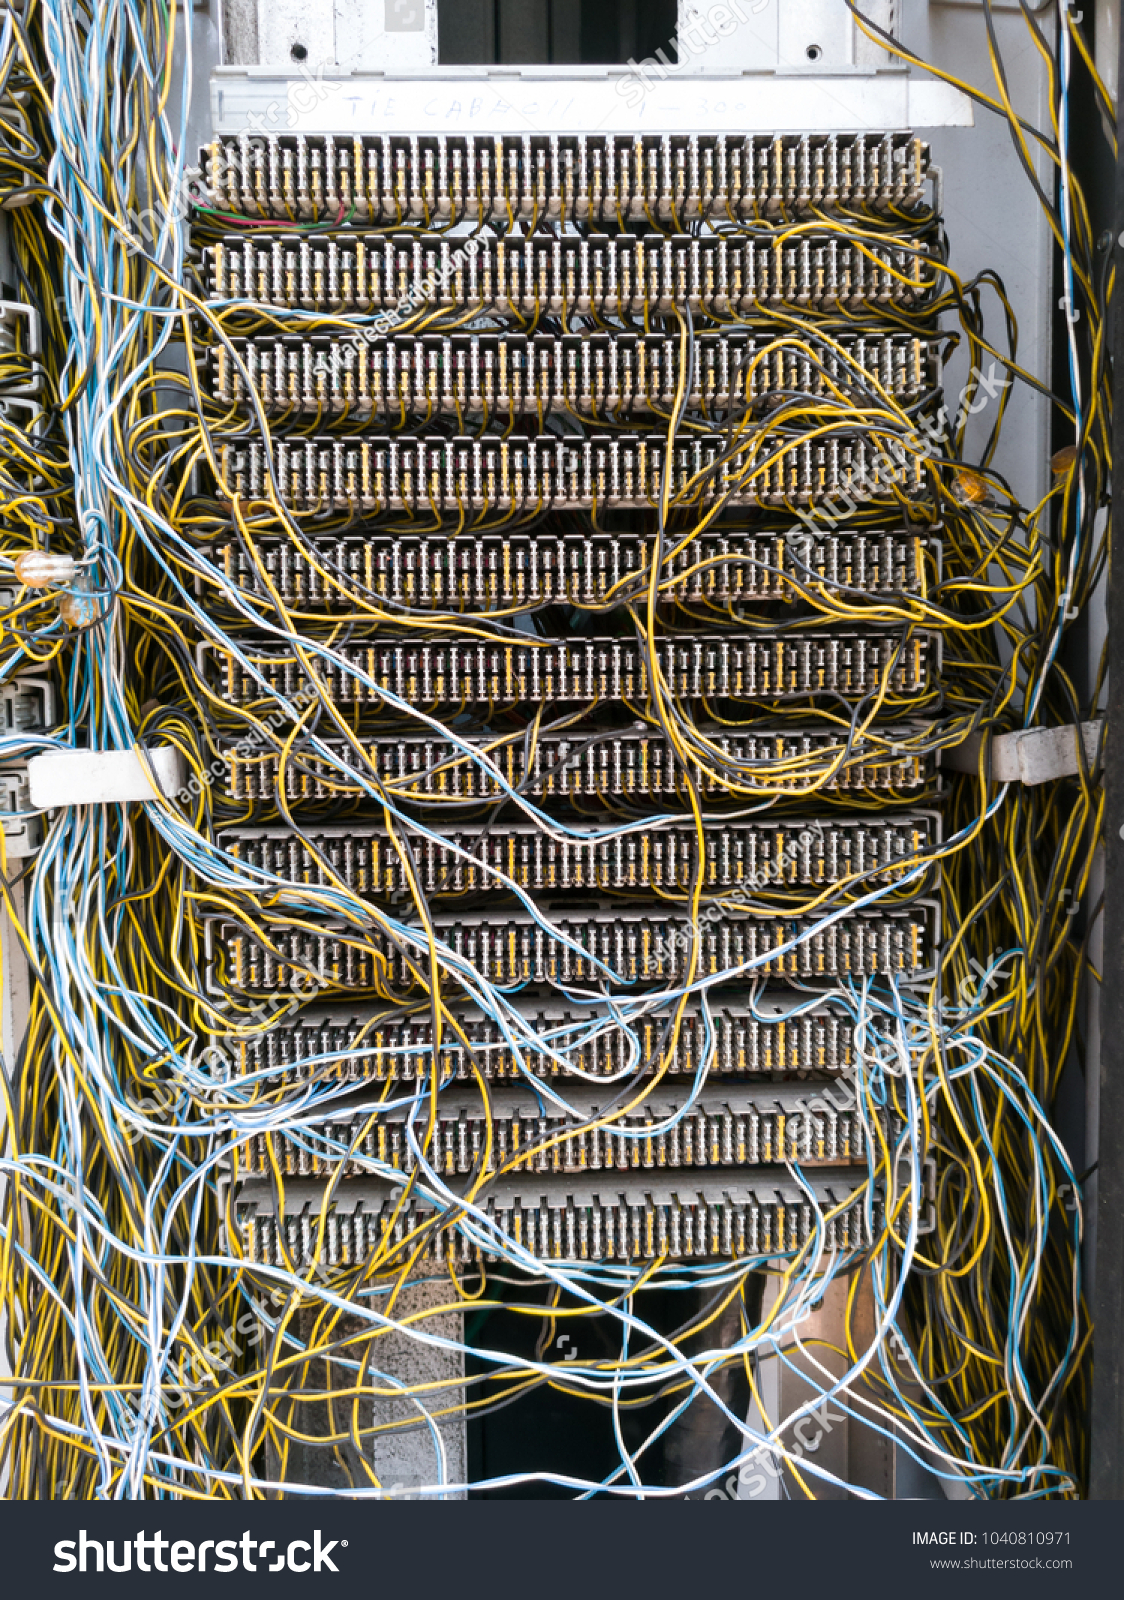 hight resolution of telephone connection panel jumper wire mini stock photo edit now telephone cable wiring configuration jumper